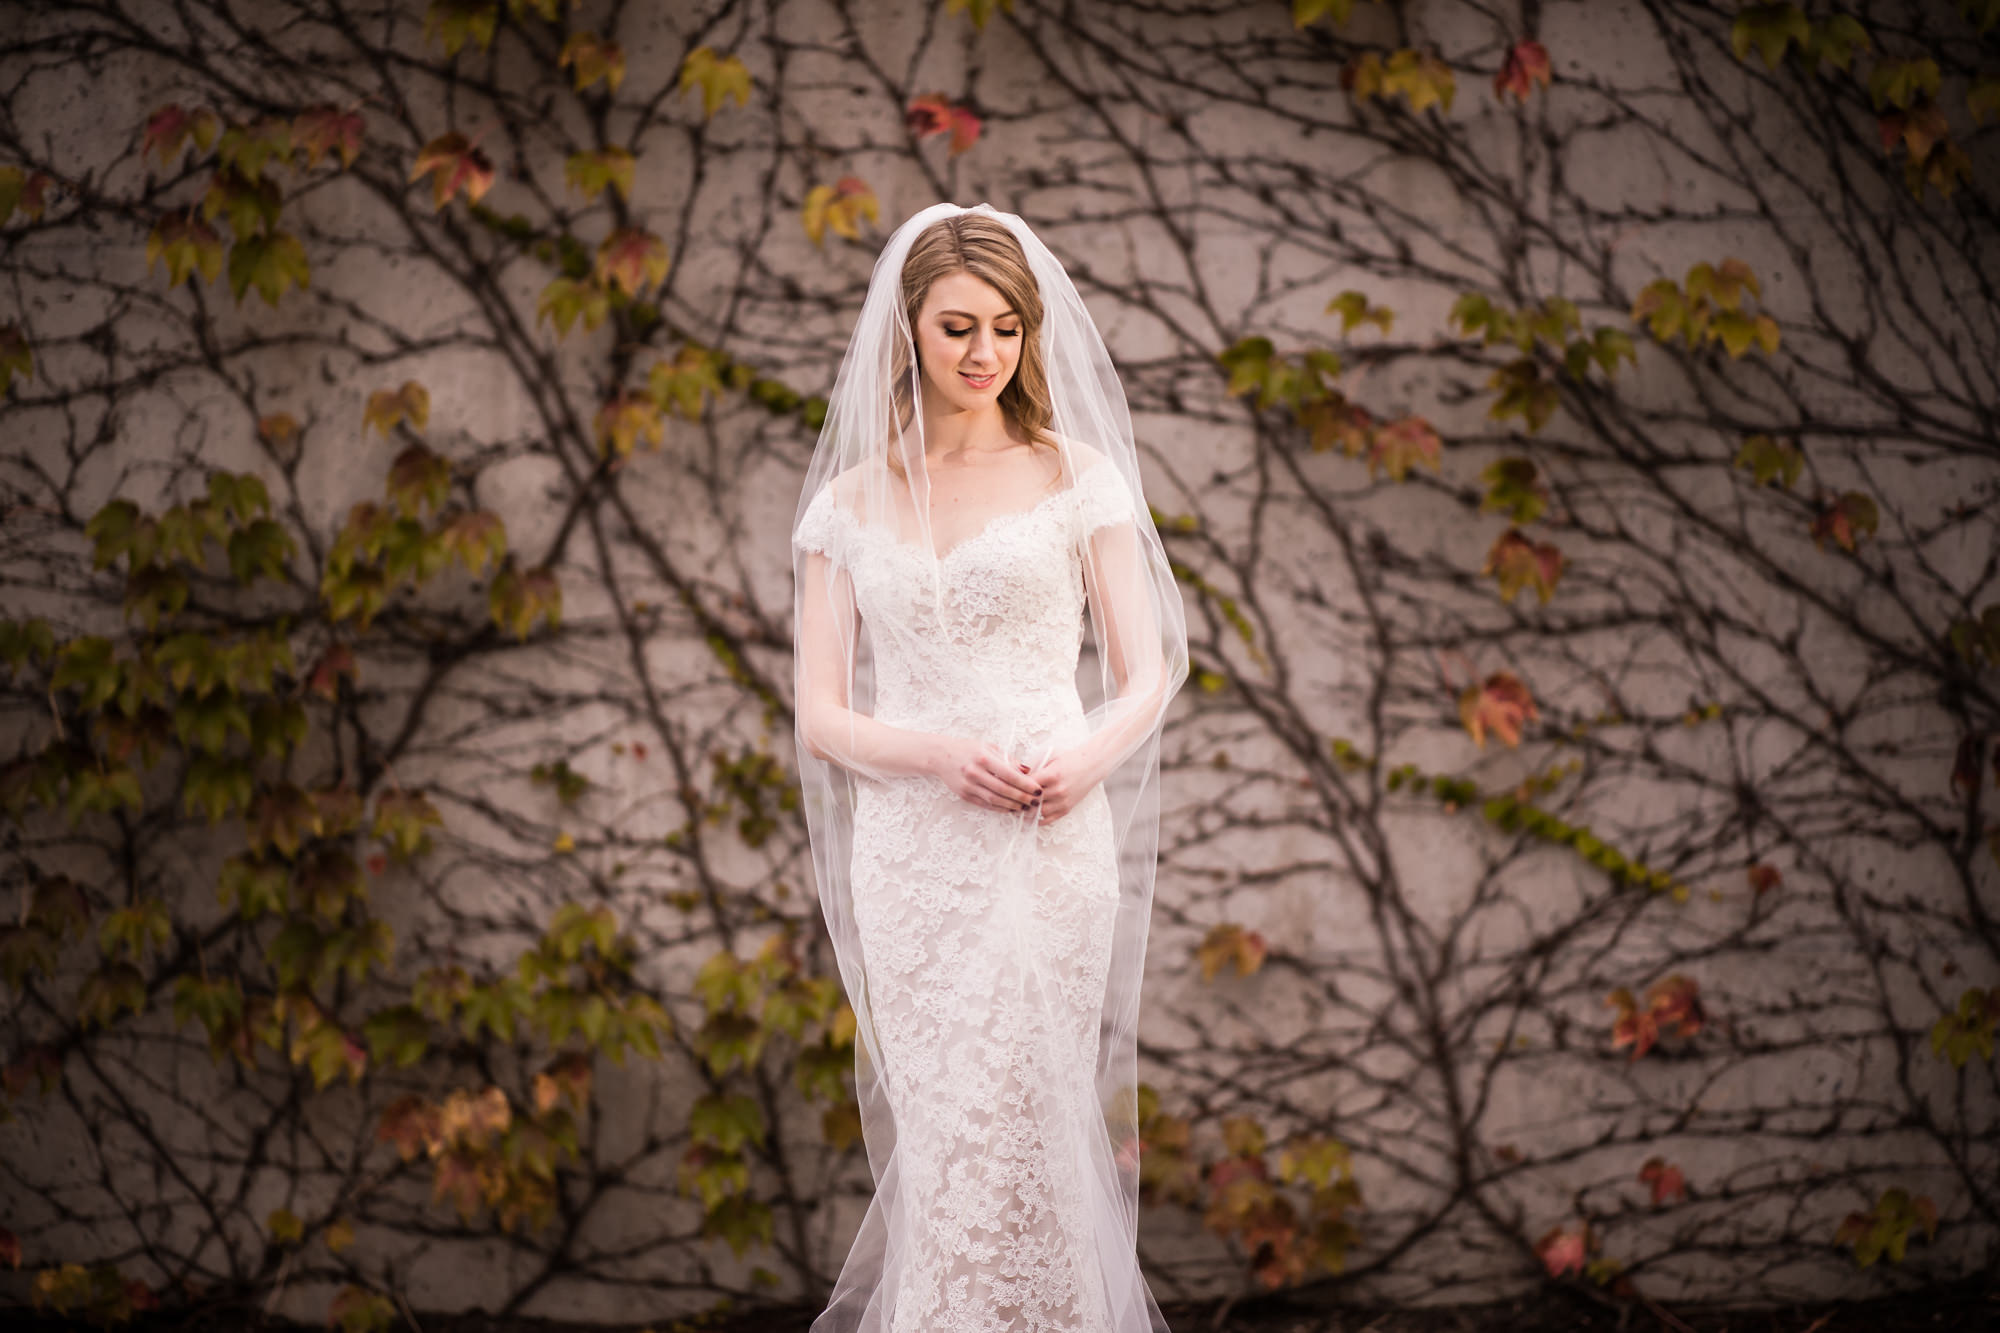 Bridal portrait  in front of Autumn wall photo by Cliff Mautner